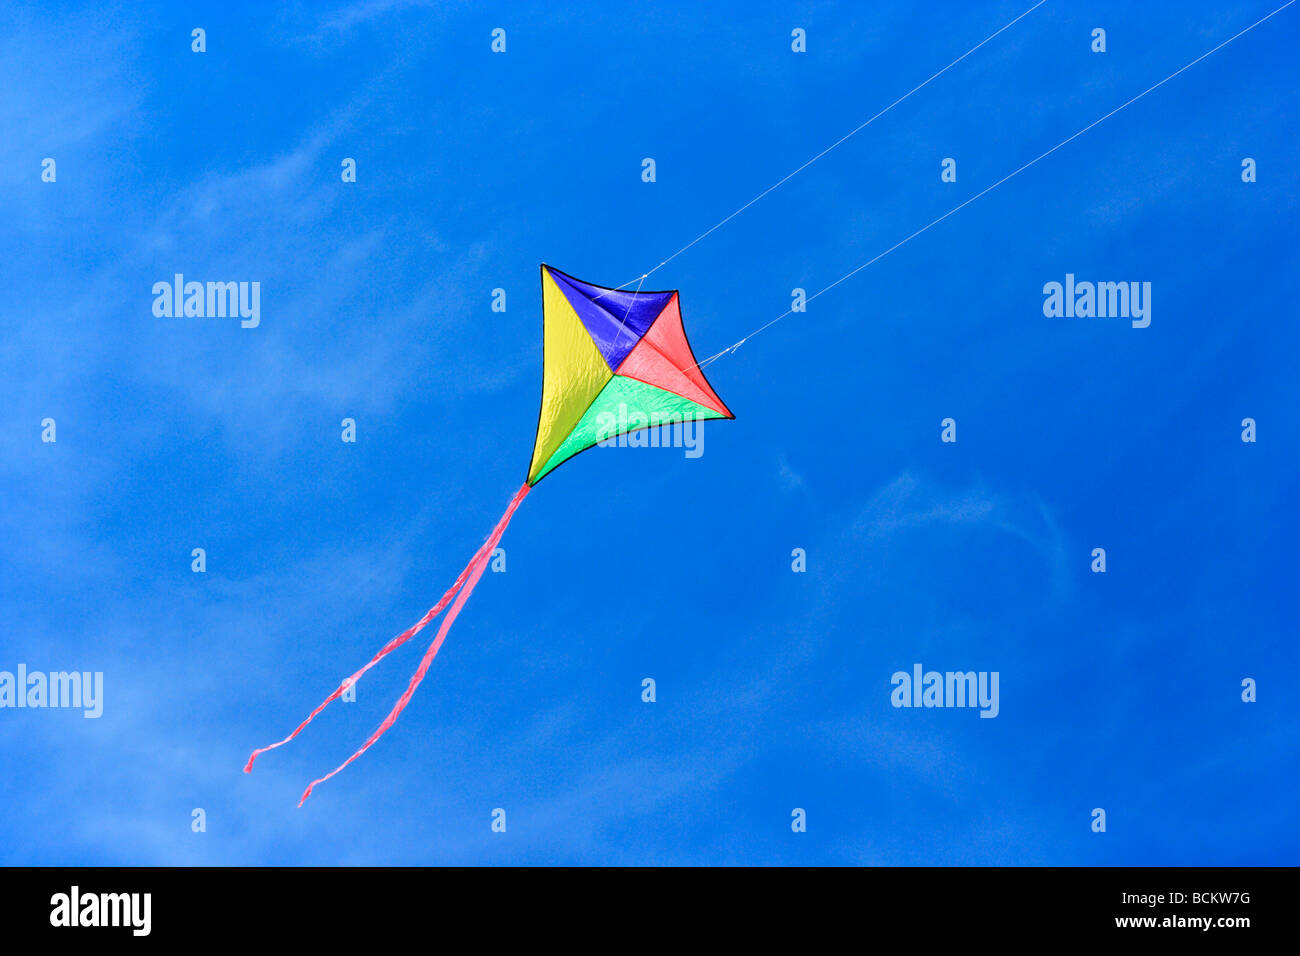 Colourful kite on a blue sky - Stock Image